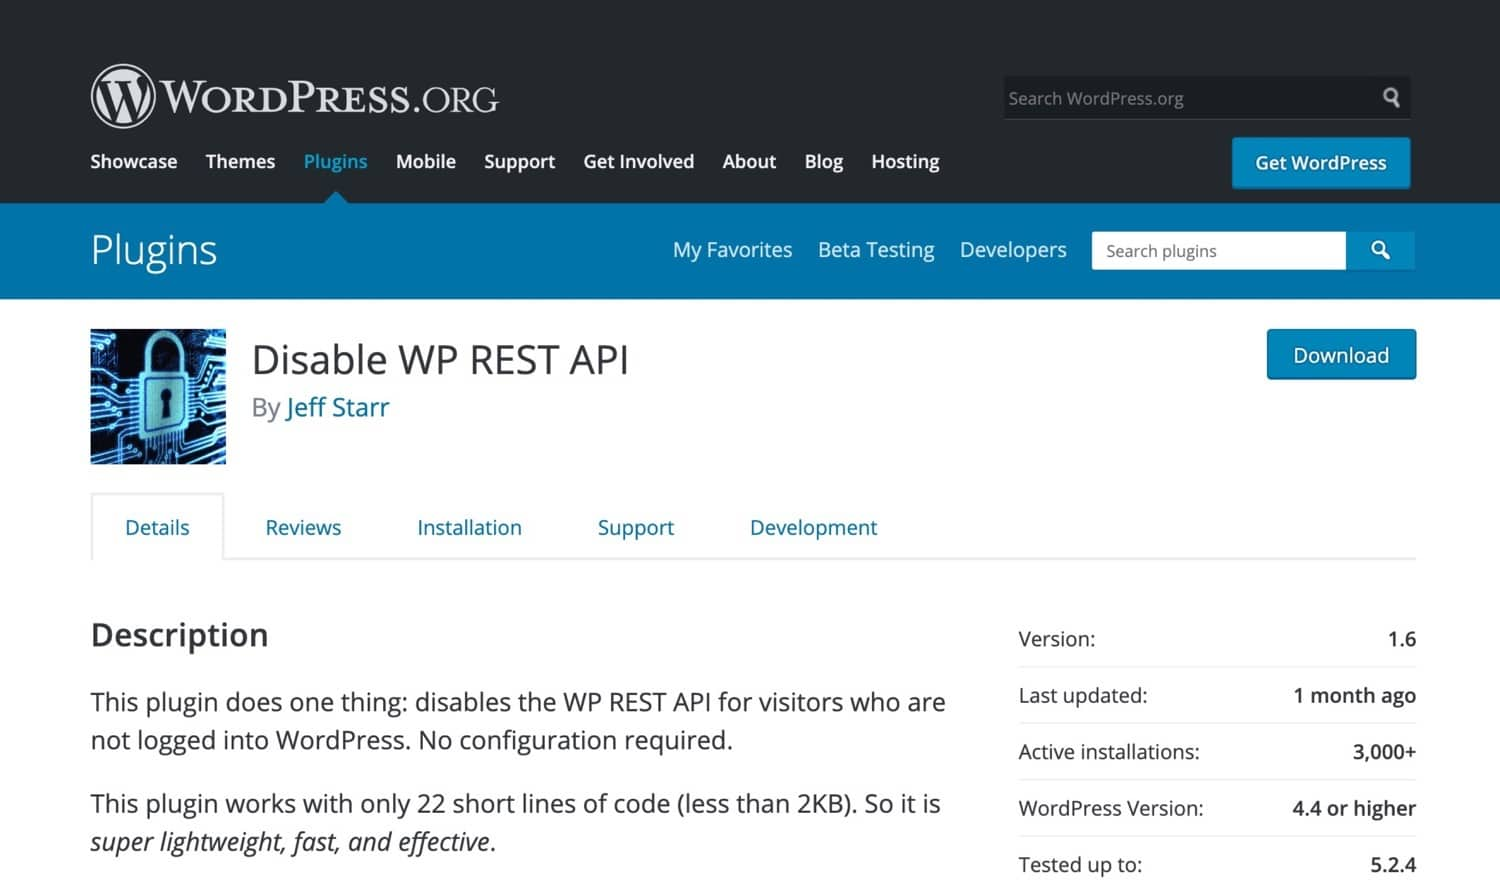 Disable WP REST API